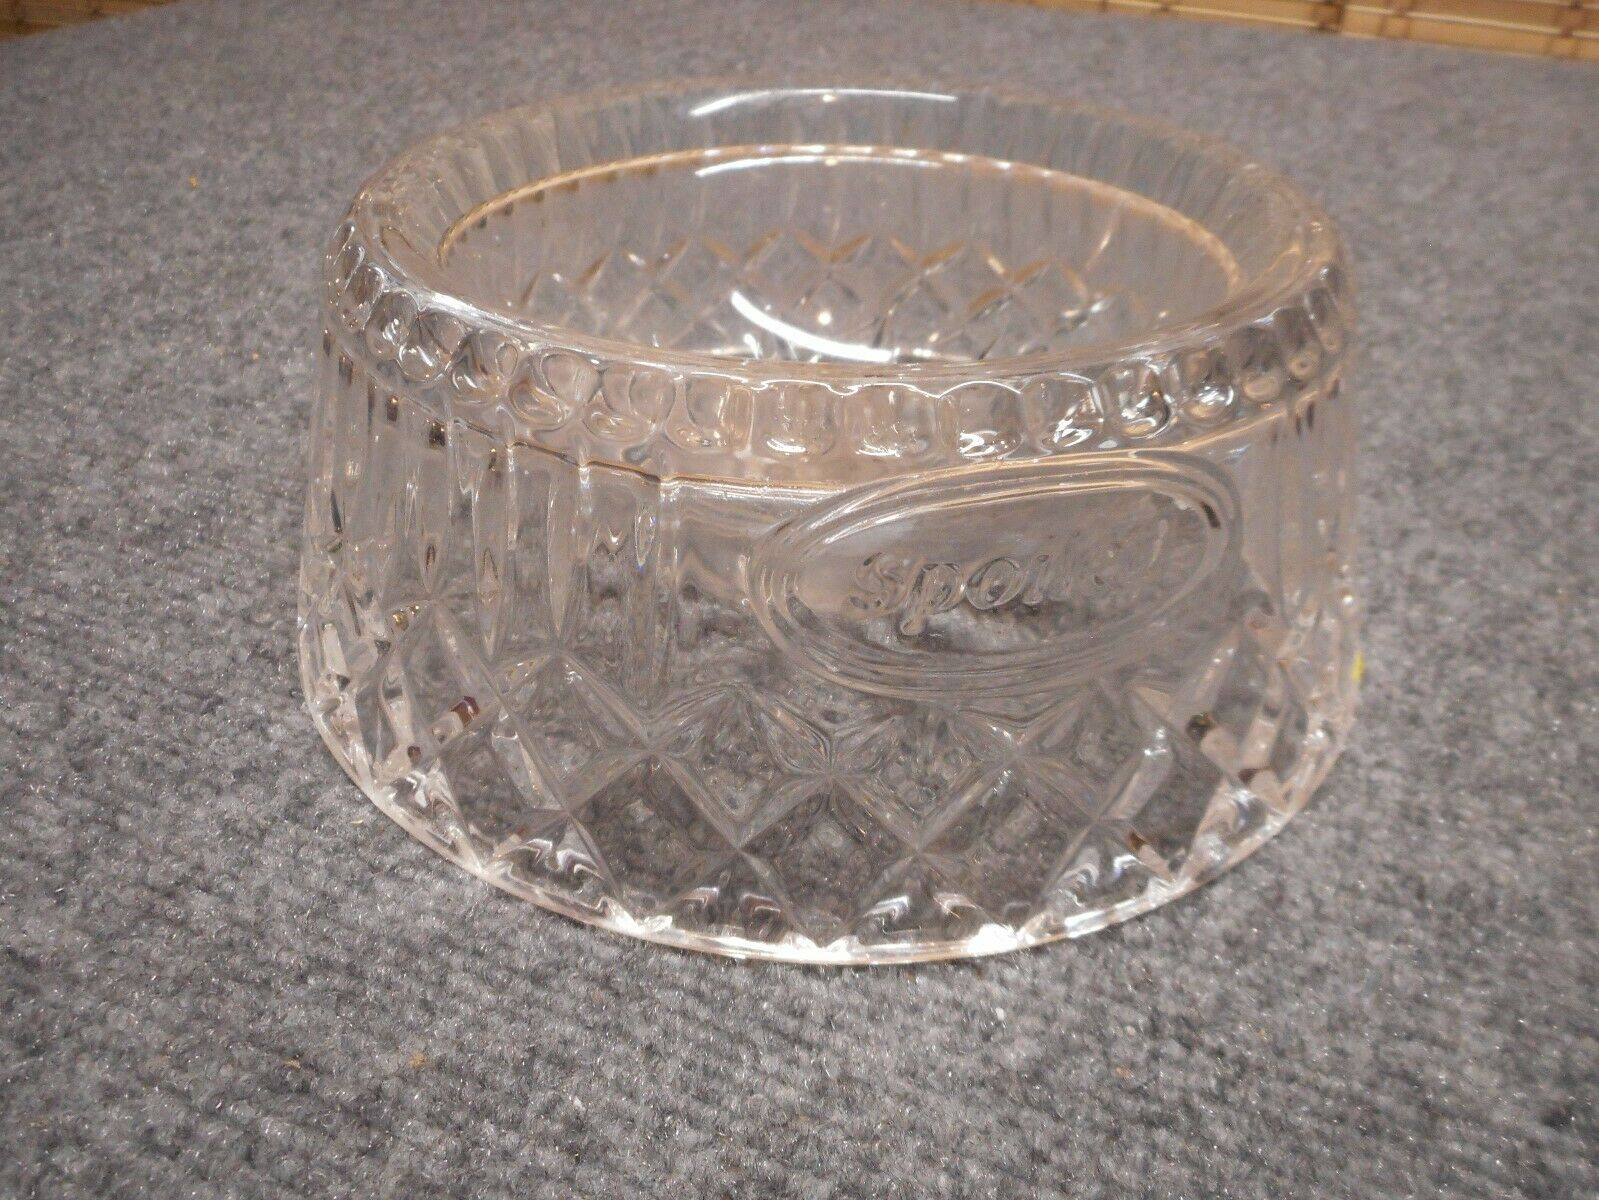 `SPOILED` CRYSTAL PET FOOD GLASS BOWL DISH CAT DOG KITTEN PUPPY Very Heavy